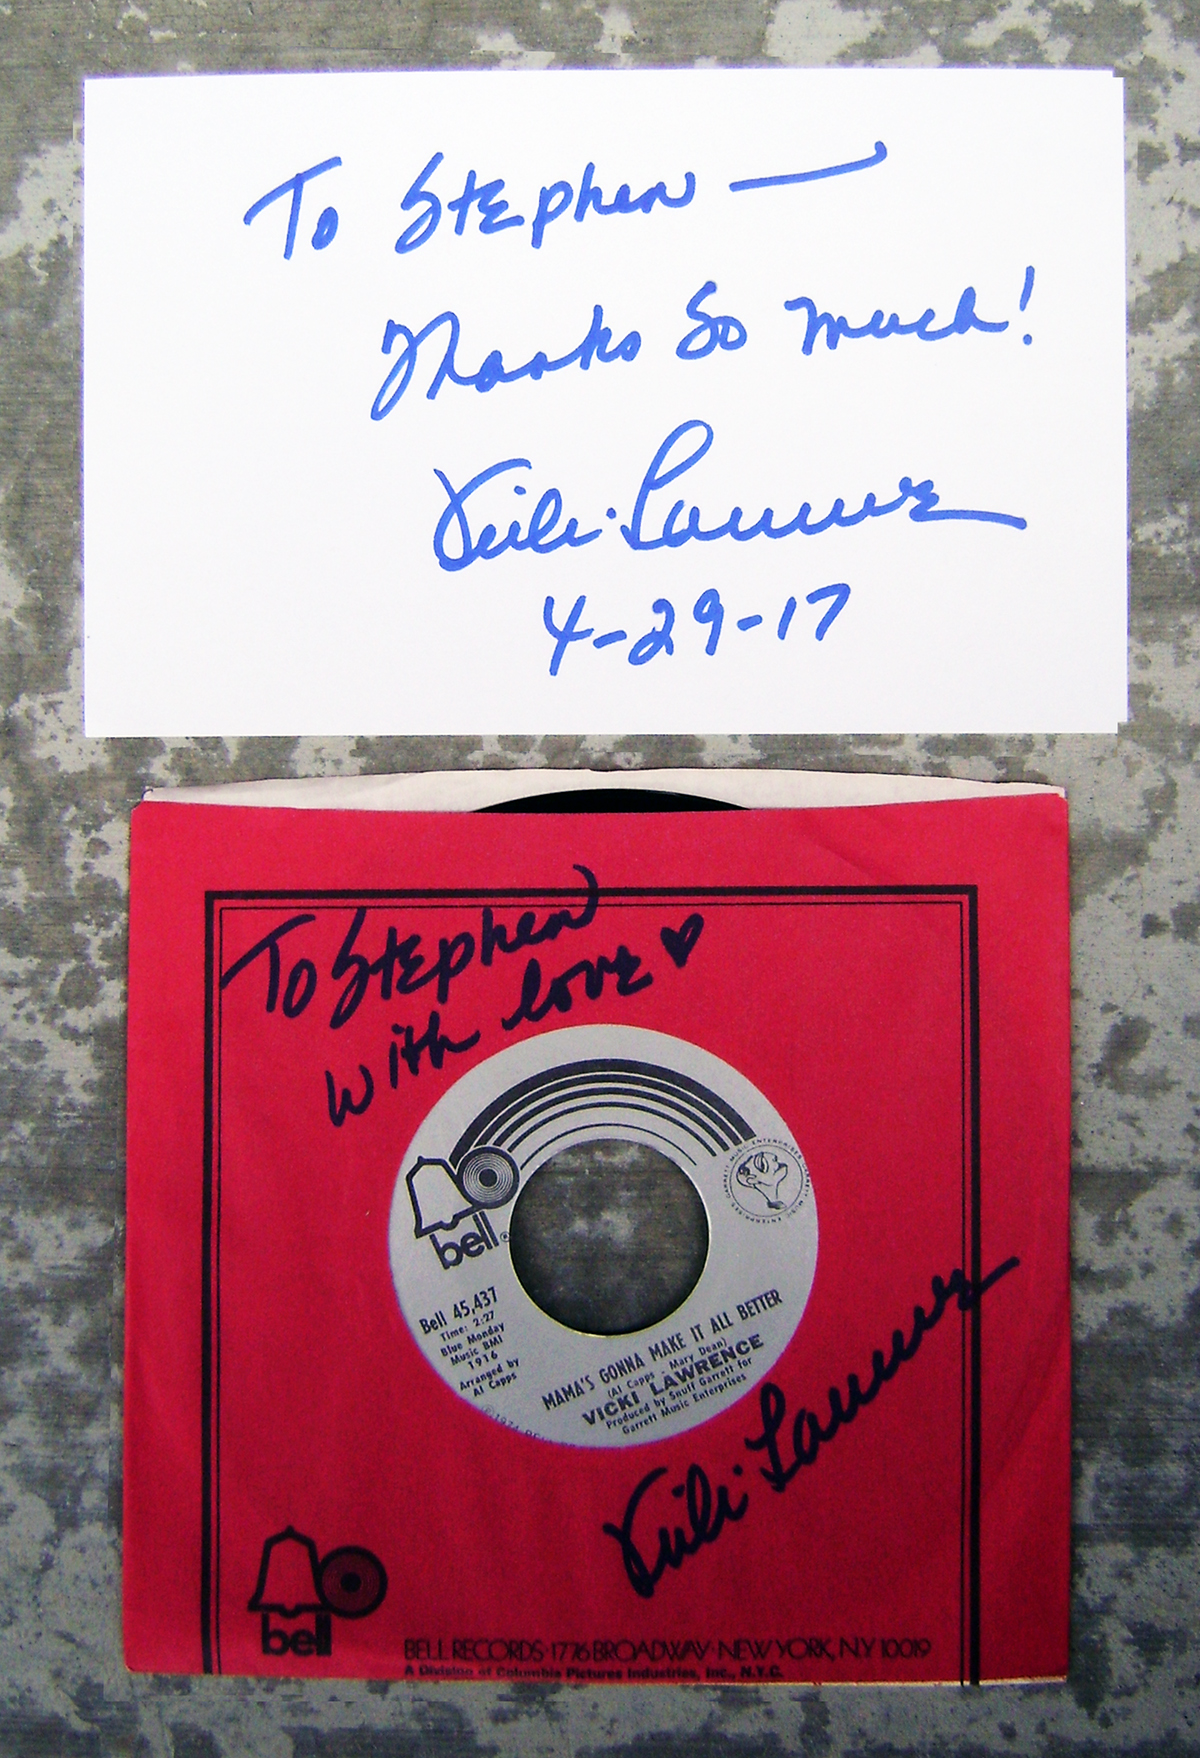 Index Card and 45rpm - Vicki Lawrence